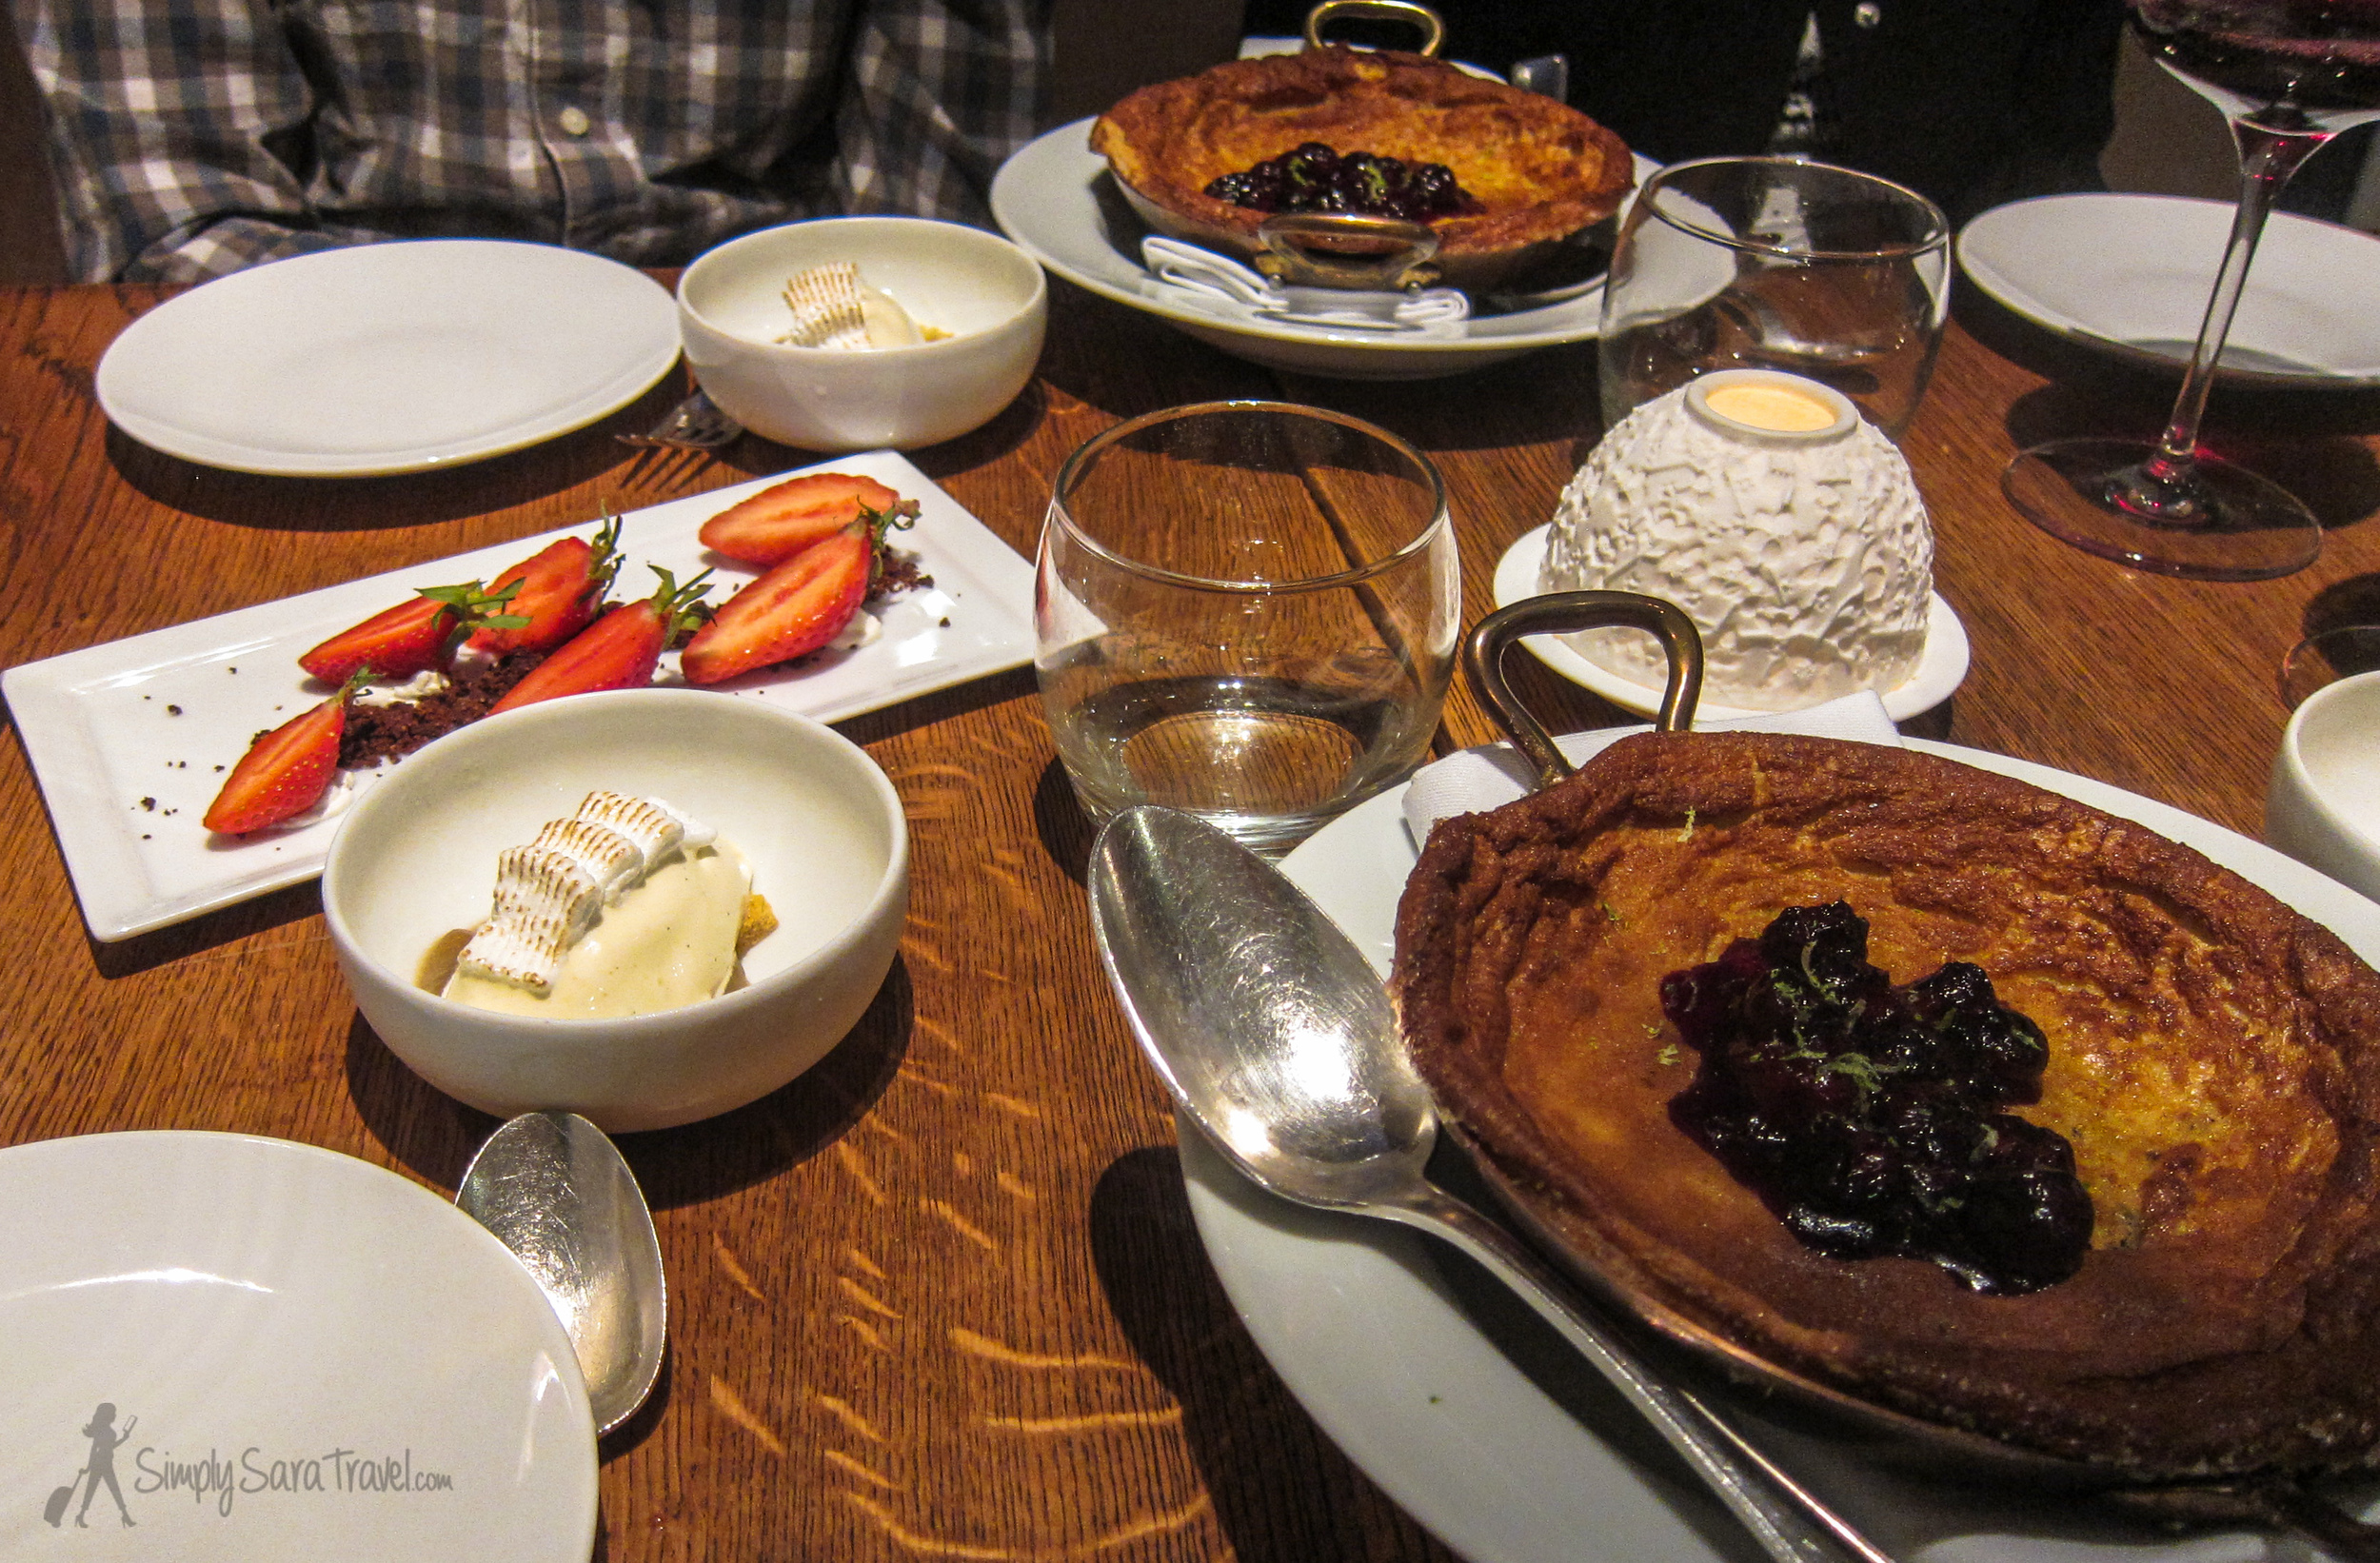 There was so much that came before thisthat I don't know how we plowed through three desserts - it was that good!